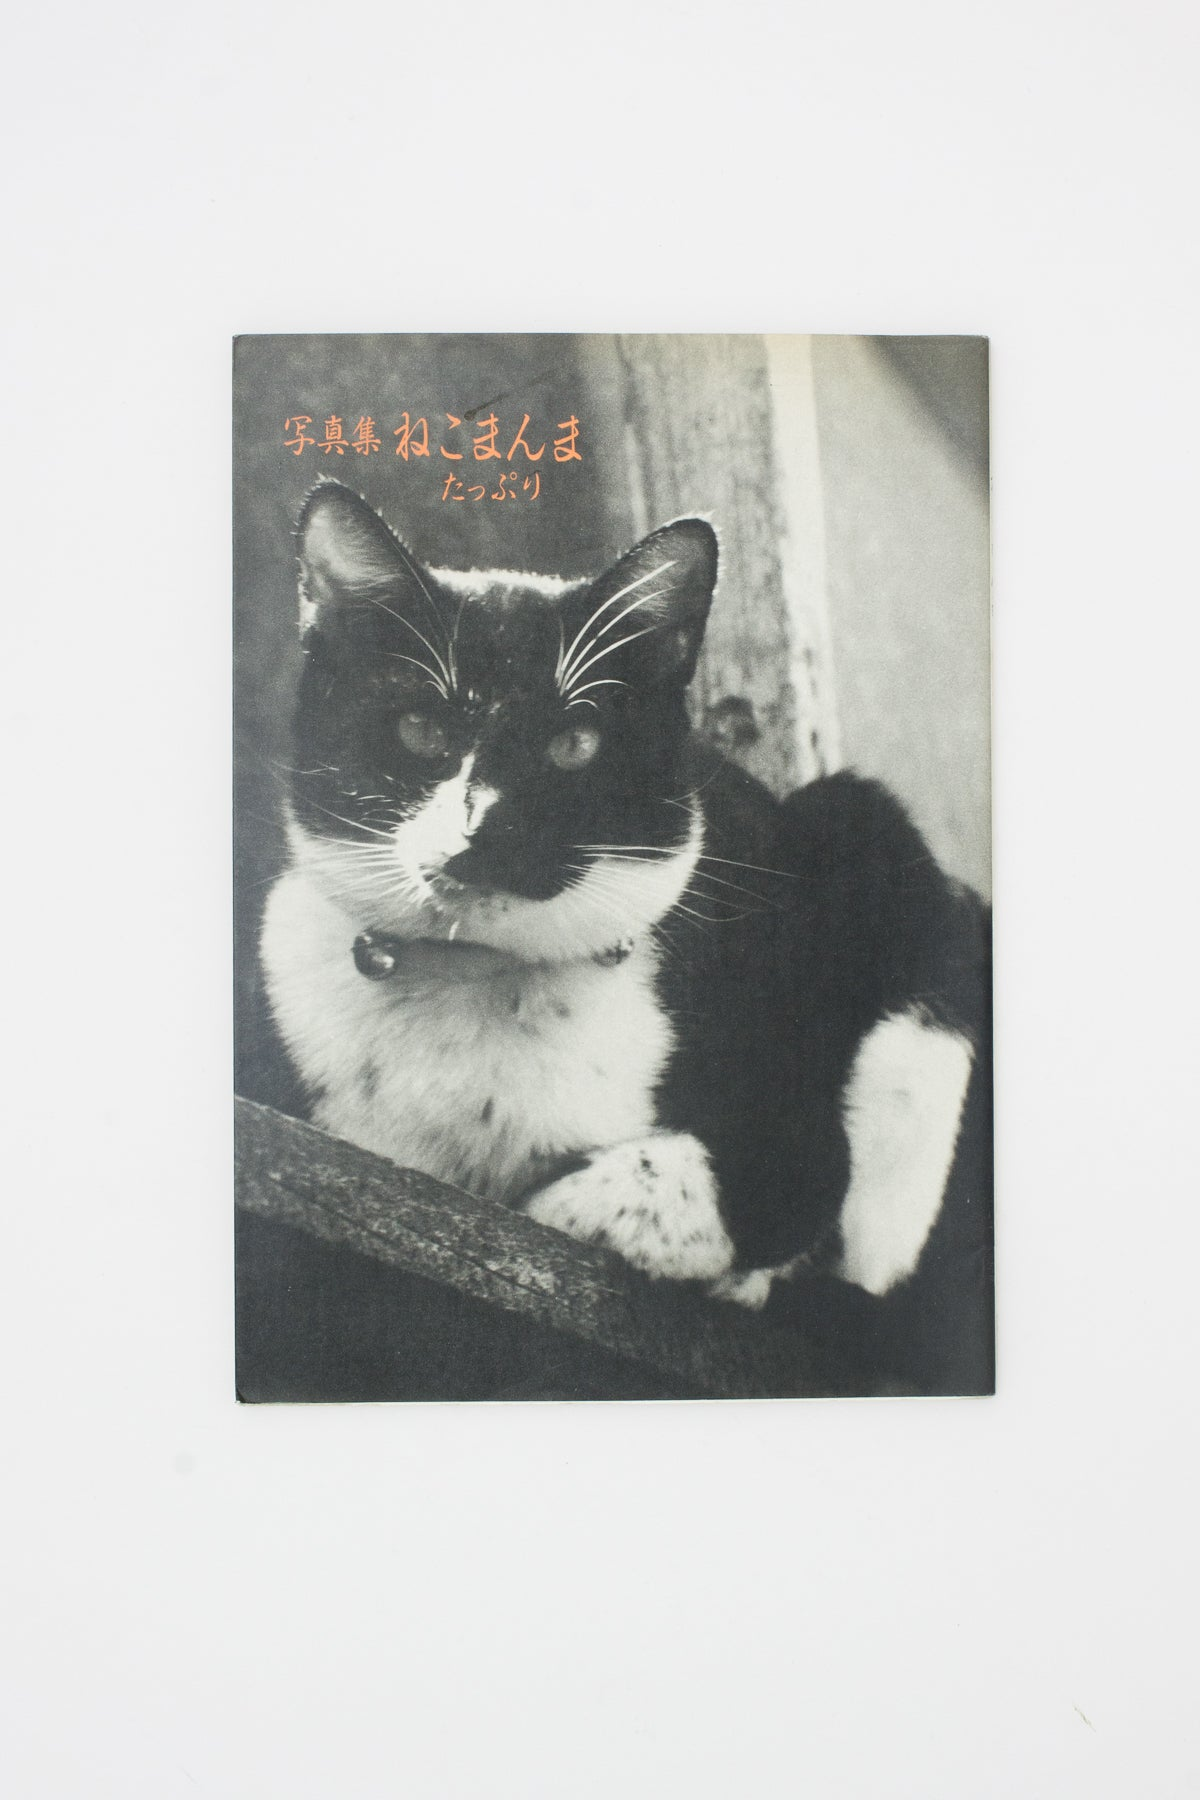 Neko manma 'The Cat is Beautiful' Photobook